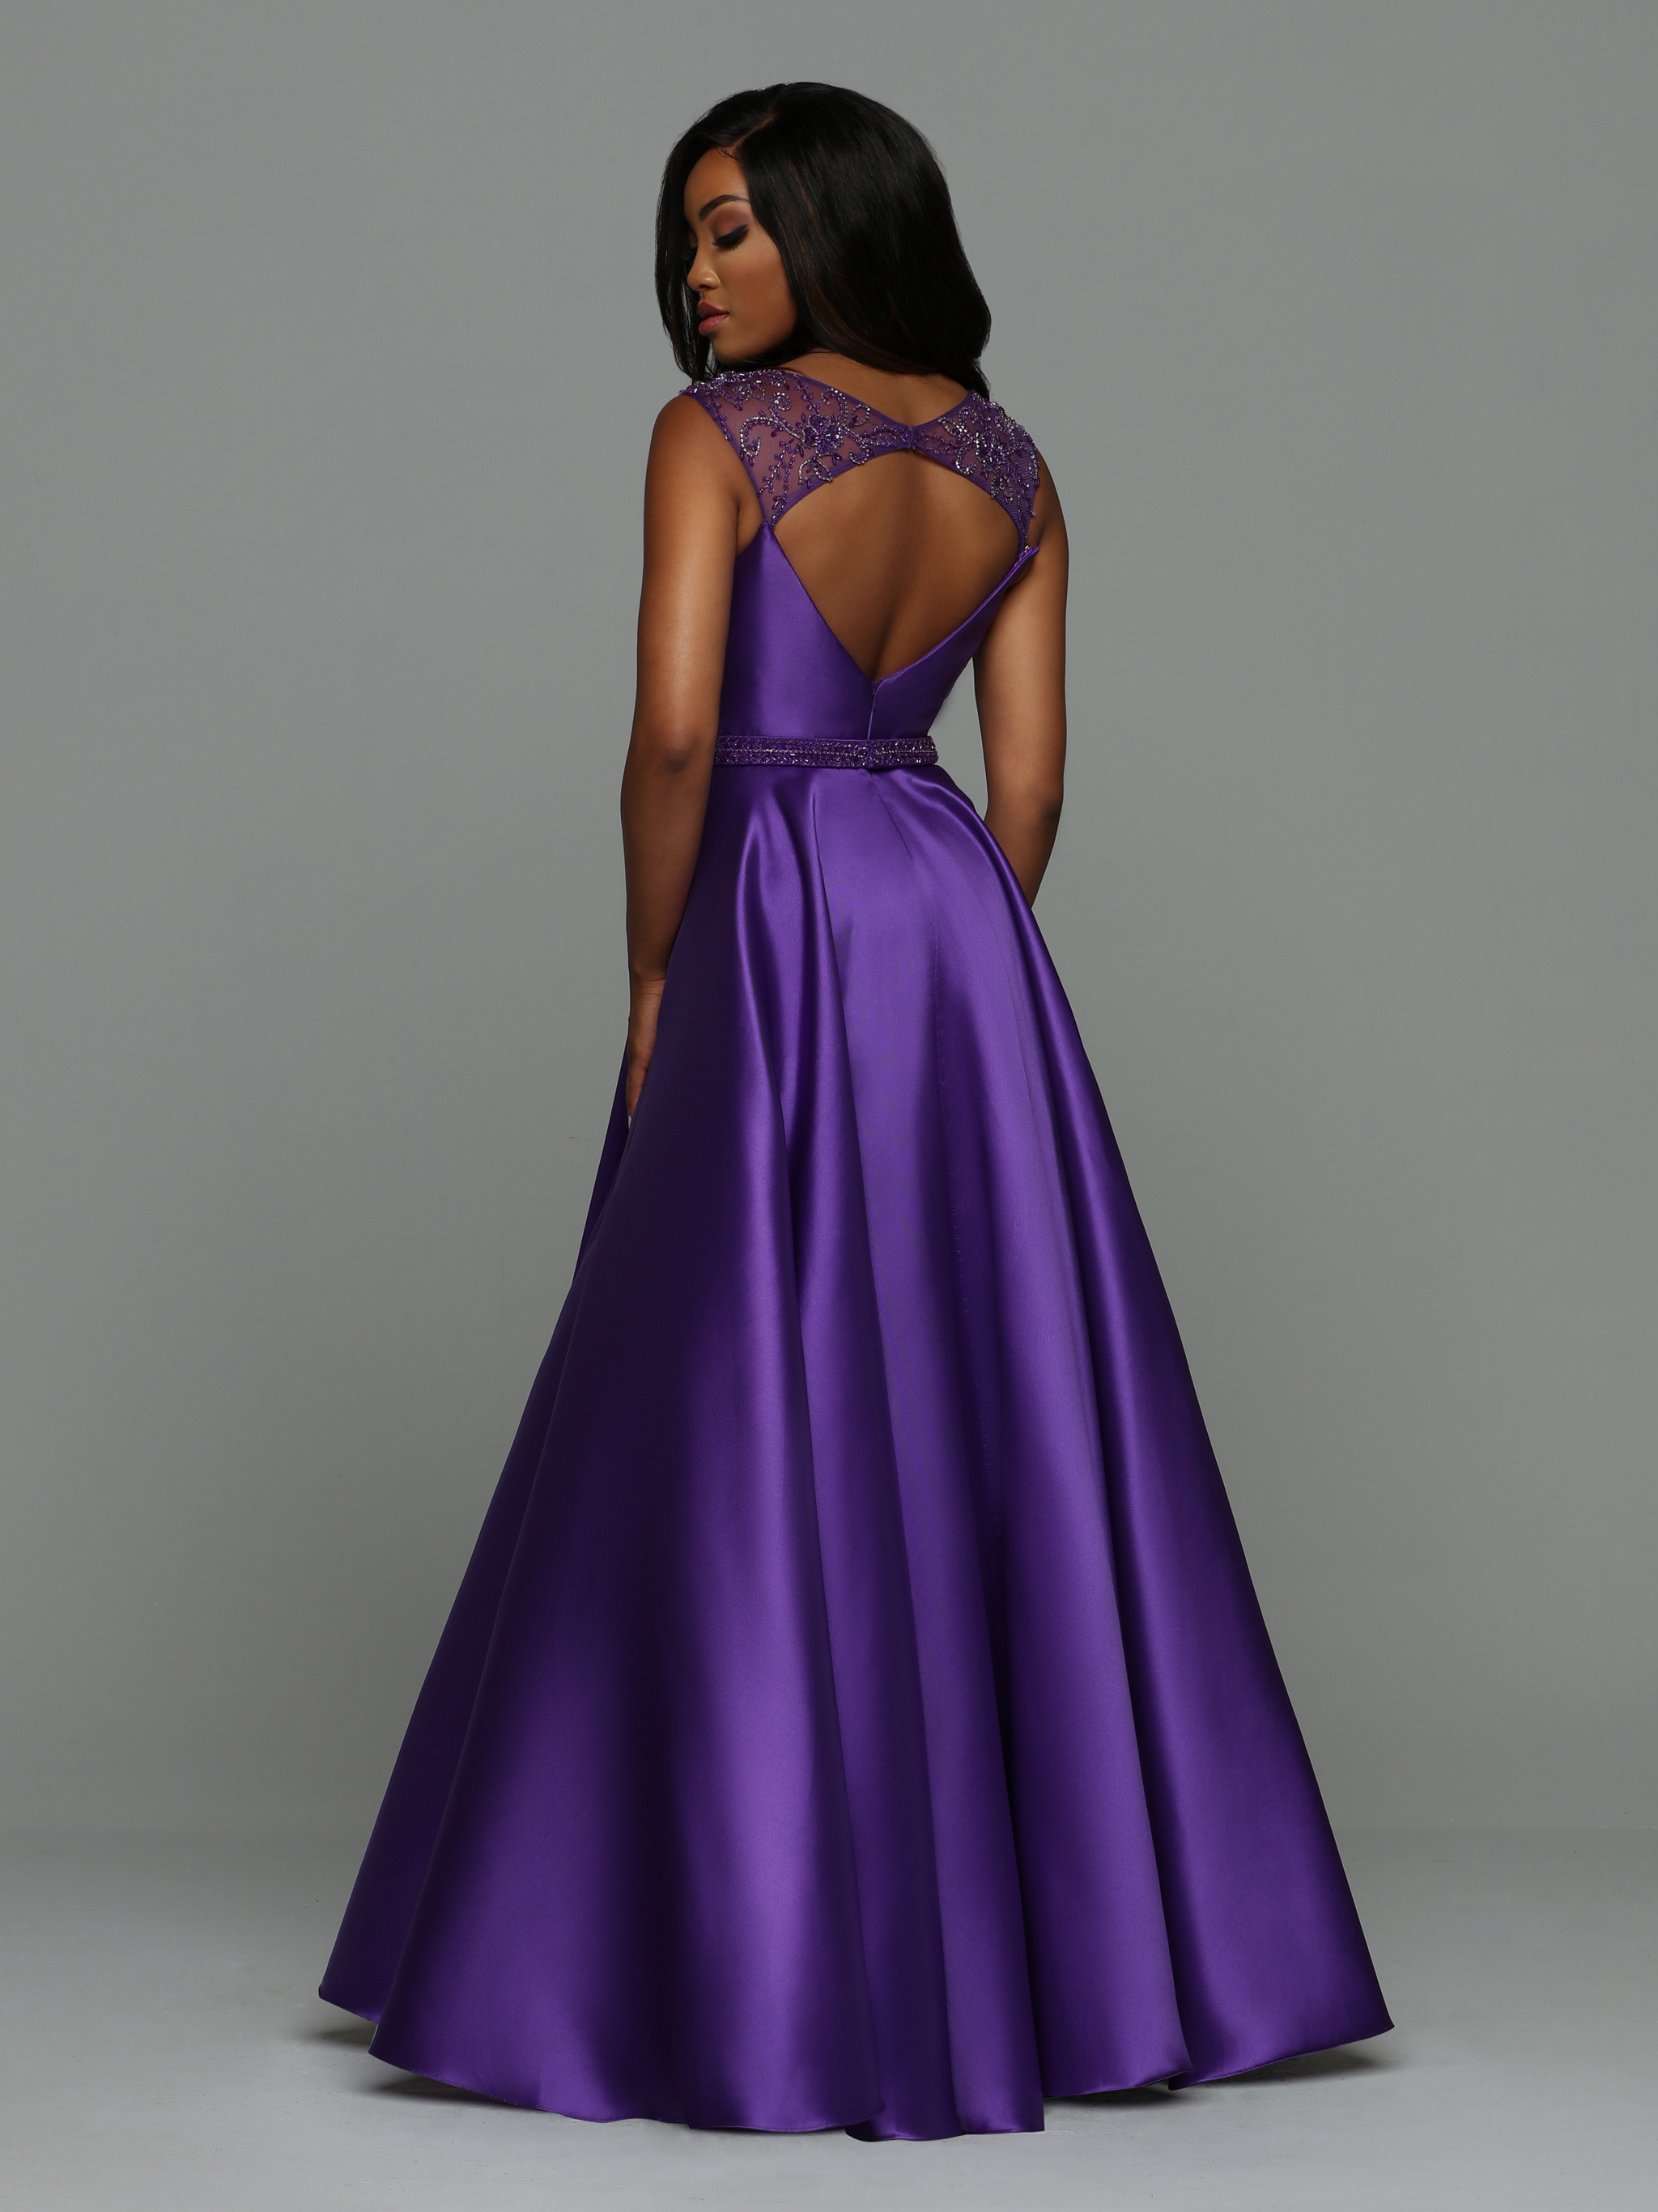 Image showing back view of style #71957